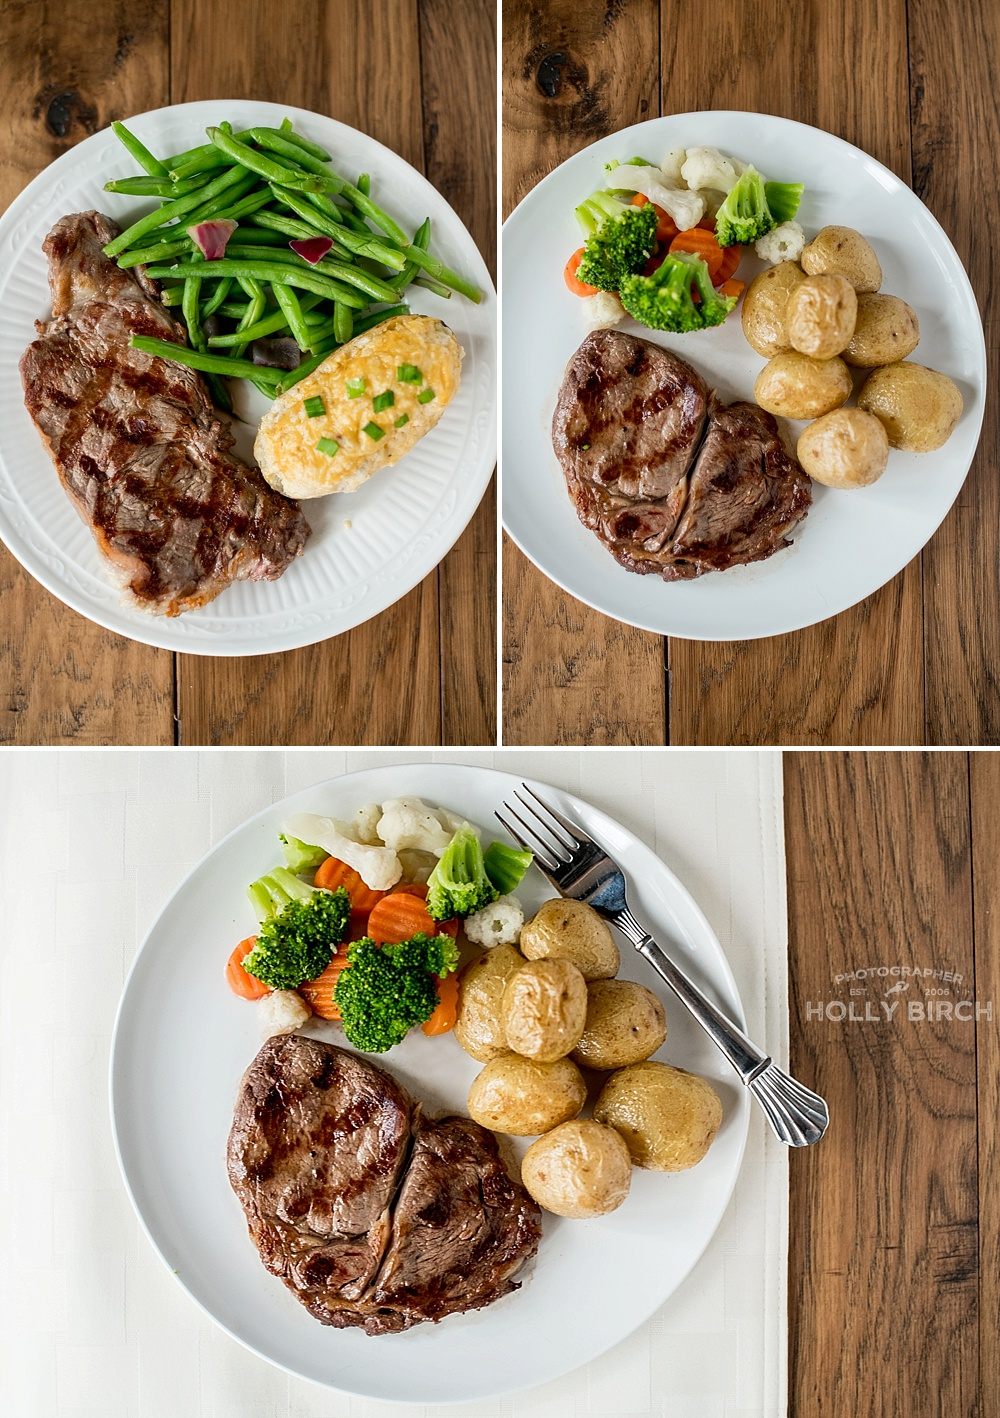 freezer-beef-steaks-burgers-Summer-Point-Beef-food-photographer_4247.jpg